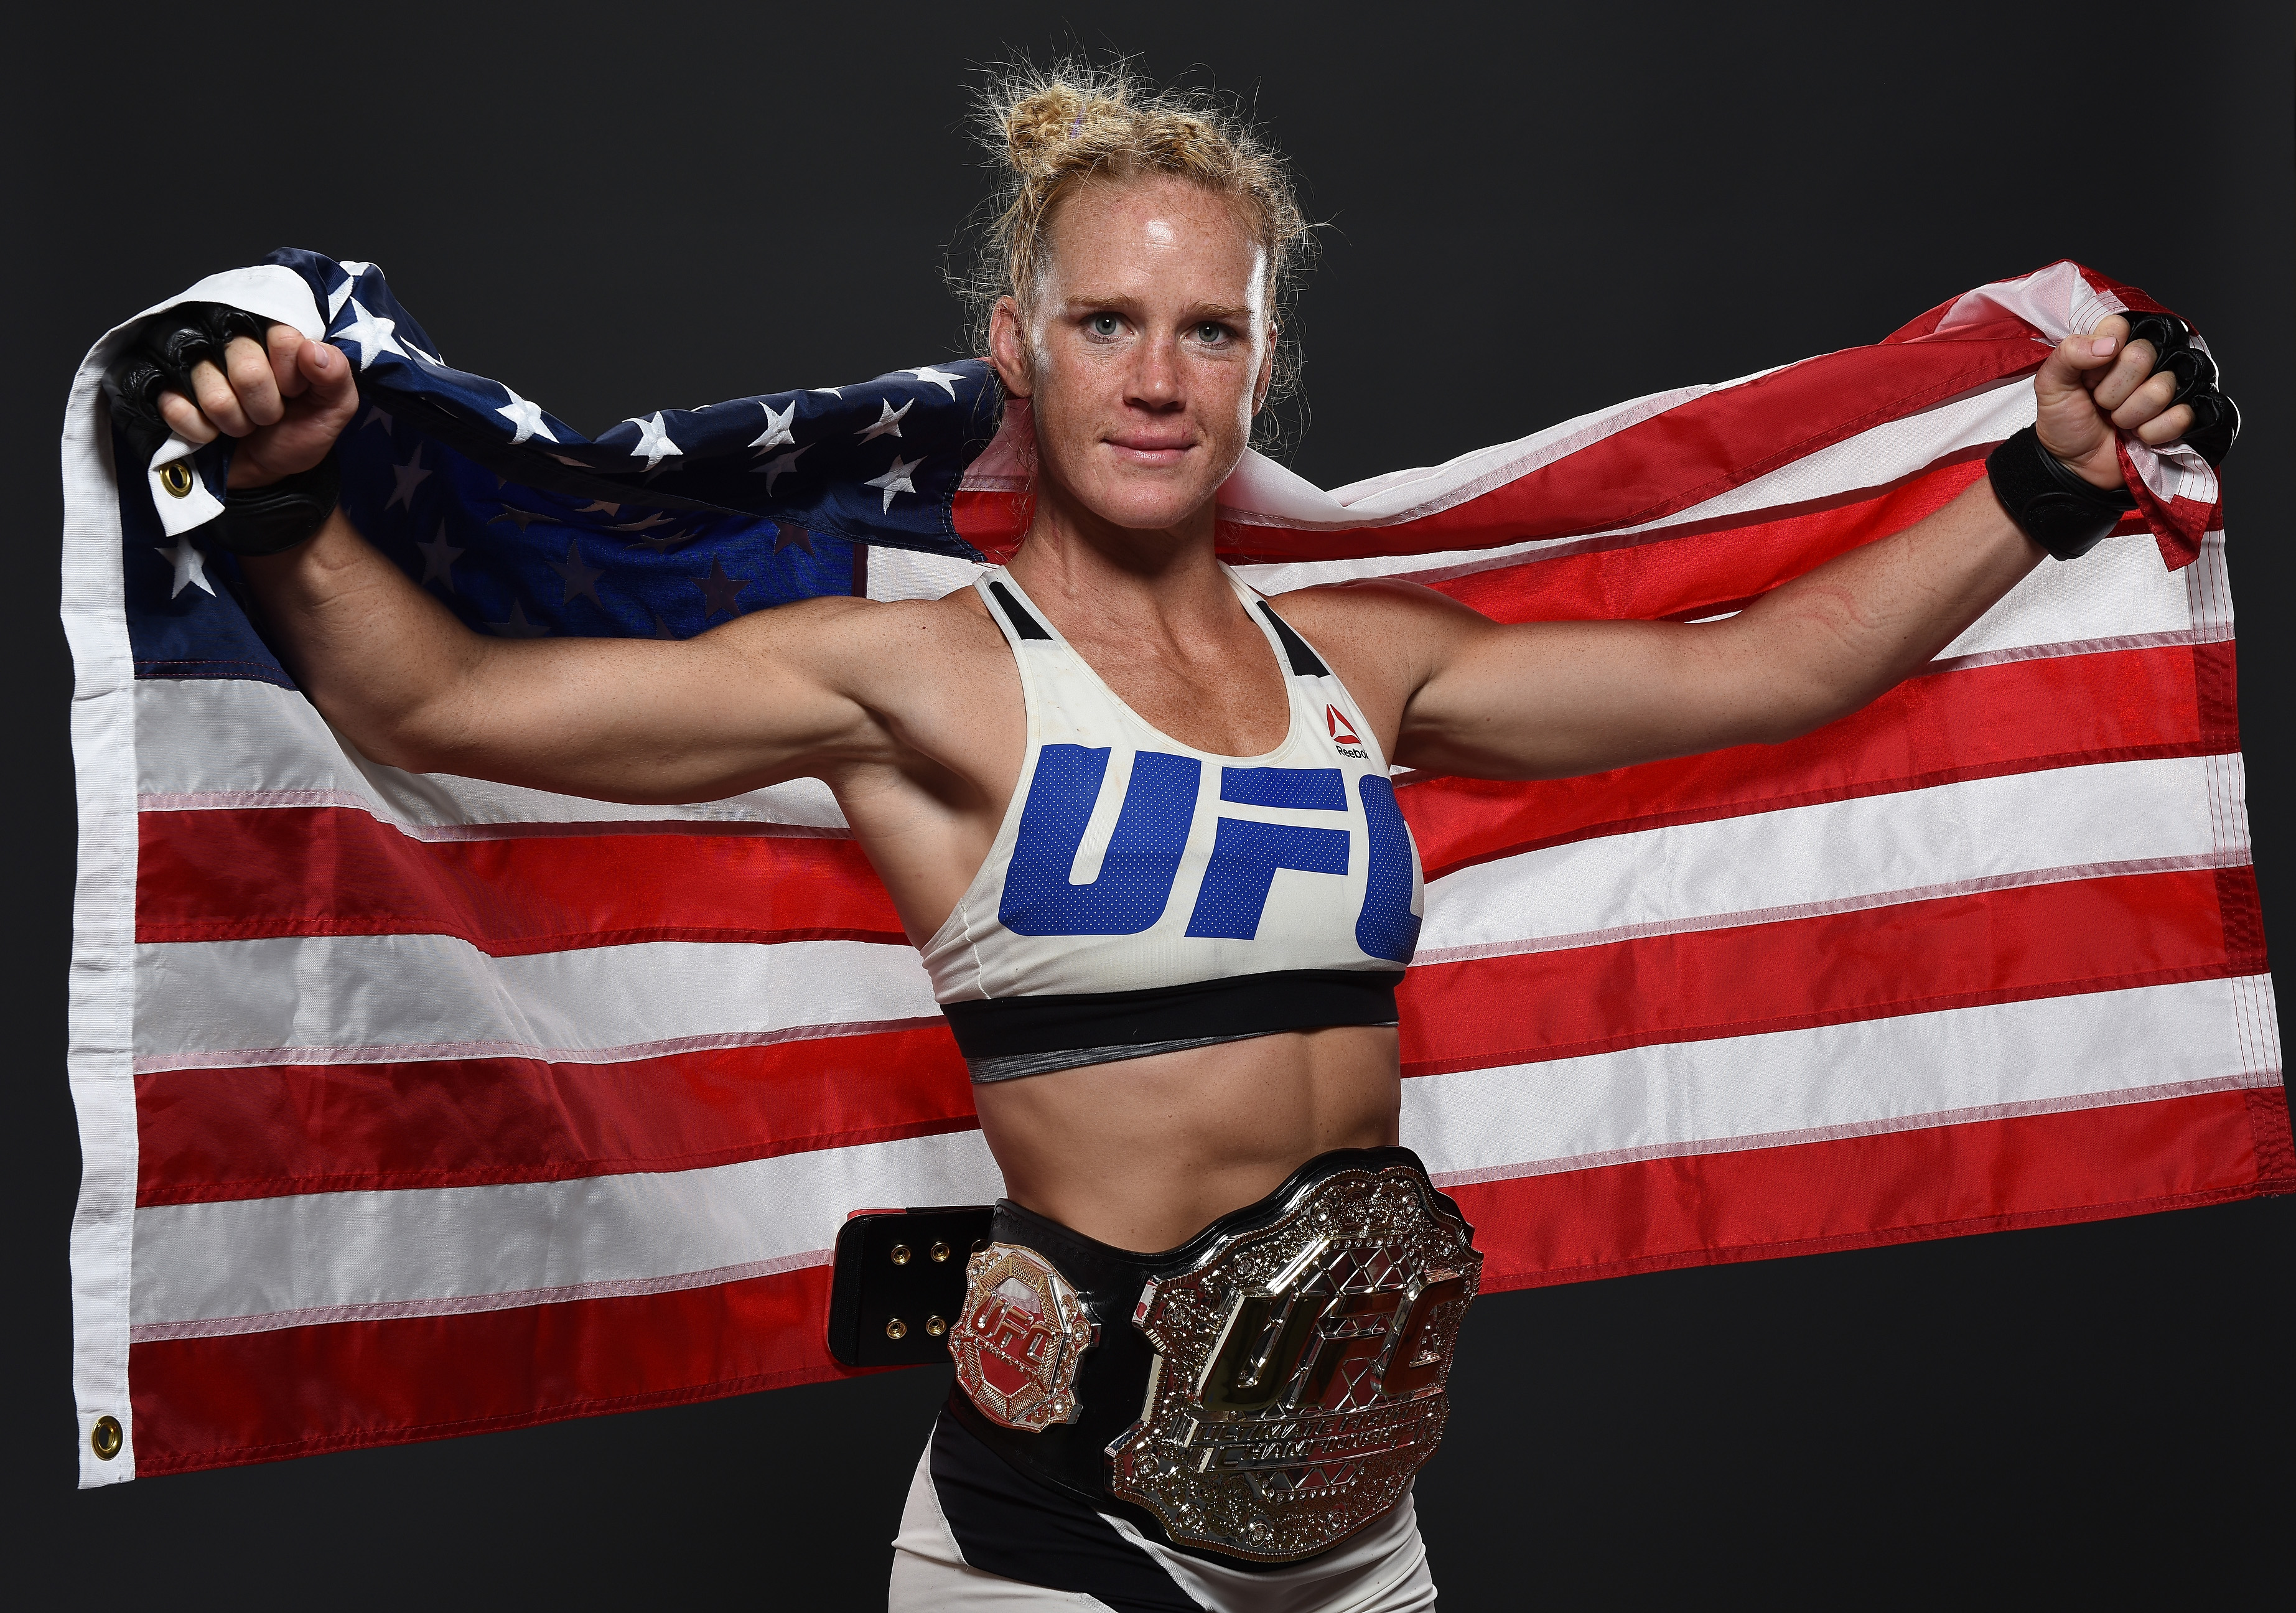 UFC women's bantamweight champion Holly Holm poses backstage for a post-fight portrait after the UFC 193 event at Etihad Stadium on November 15, 2015 in Melbourne, Australia. Holly Holm defeated Ronda Rousey by KO in second round. (Photo by Mike Roach/Zuffa LLC)